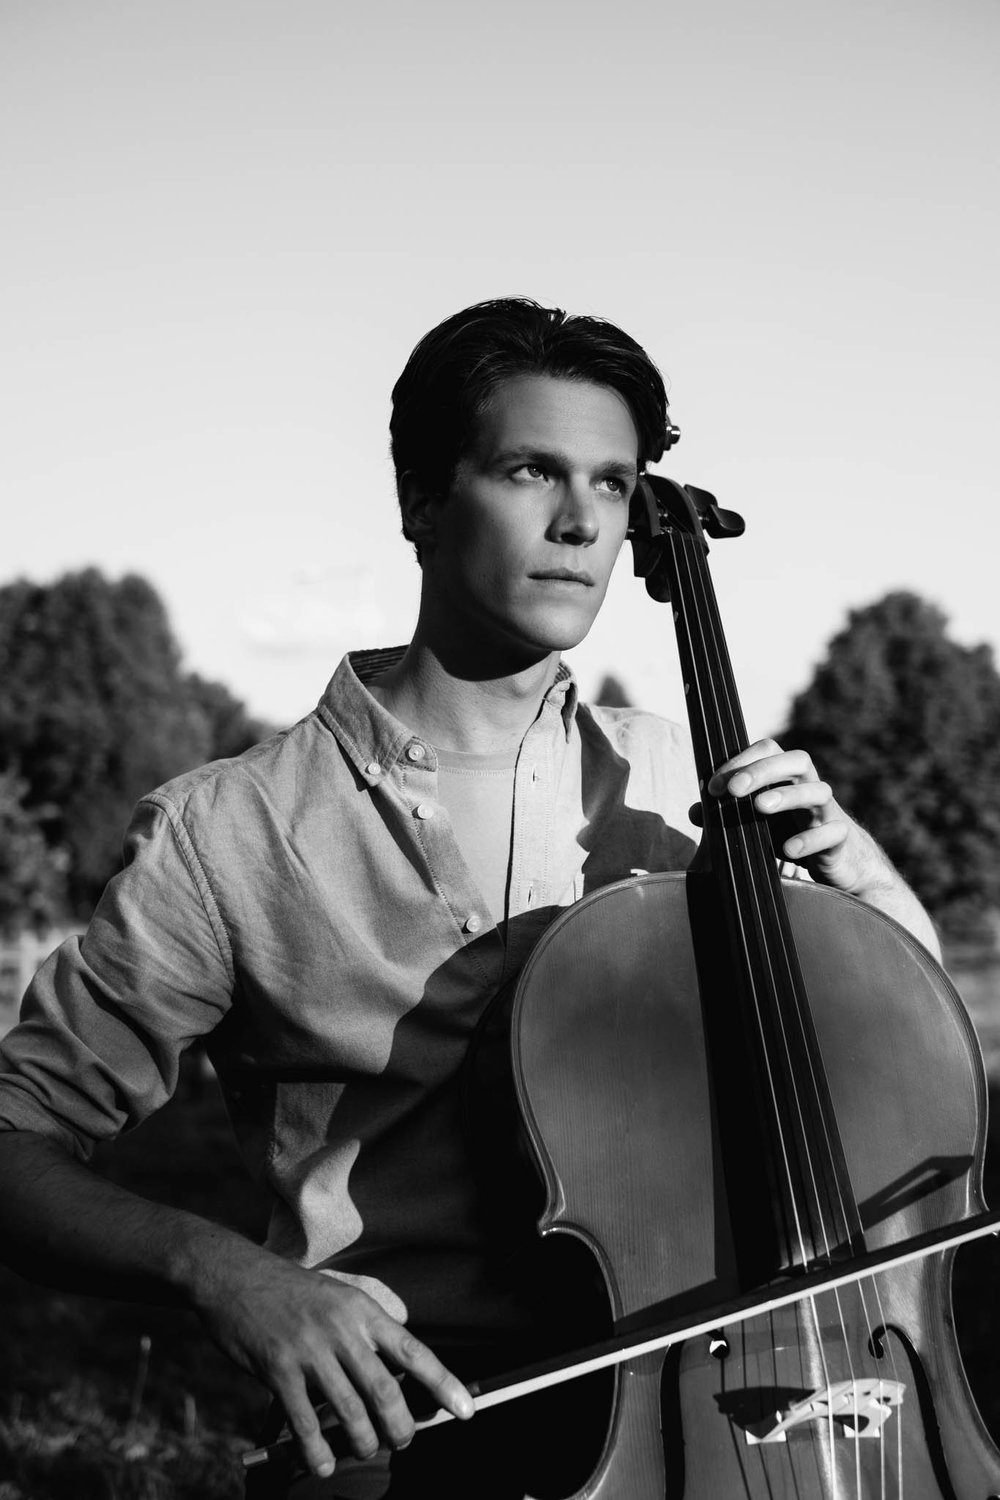 Patrick Lyall, playing cello